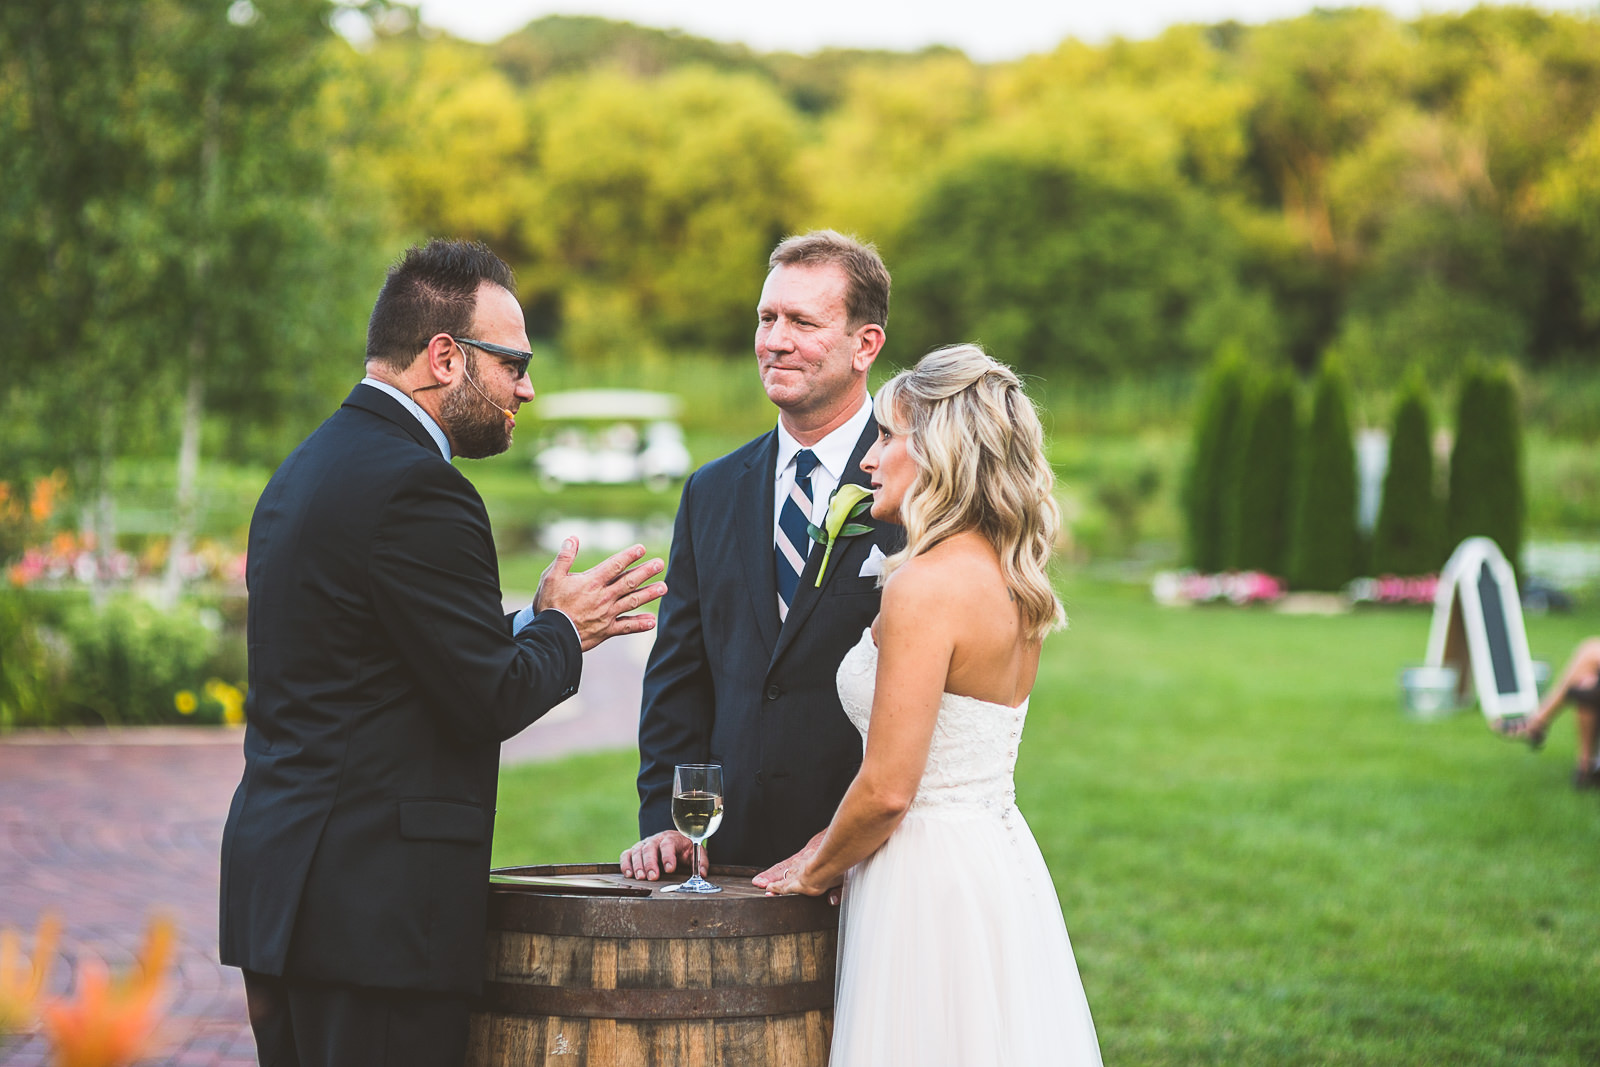 32 communion - Karen + Scott // Fishermens Inn Wedding Photographer Elburn Illinois